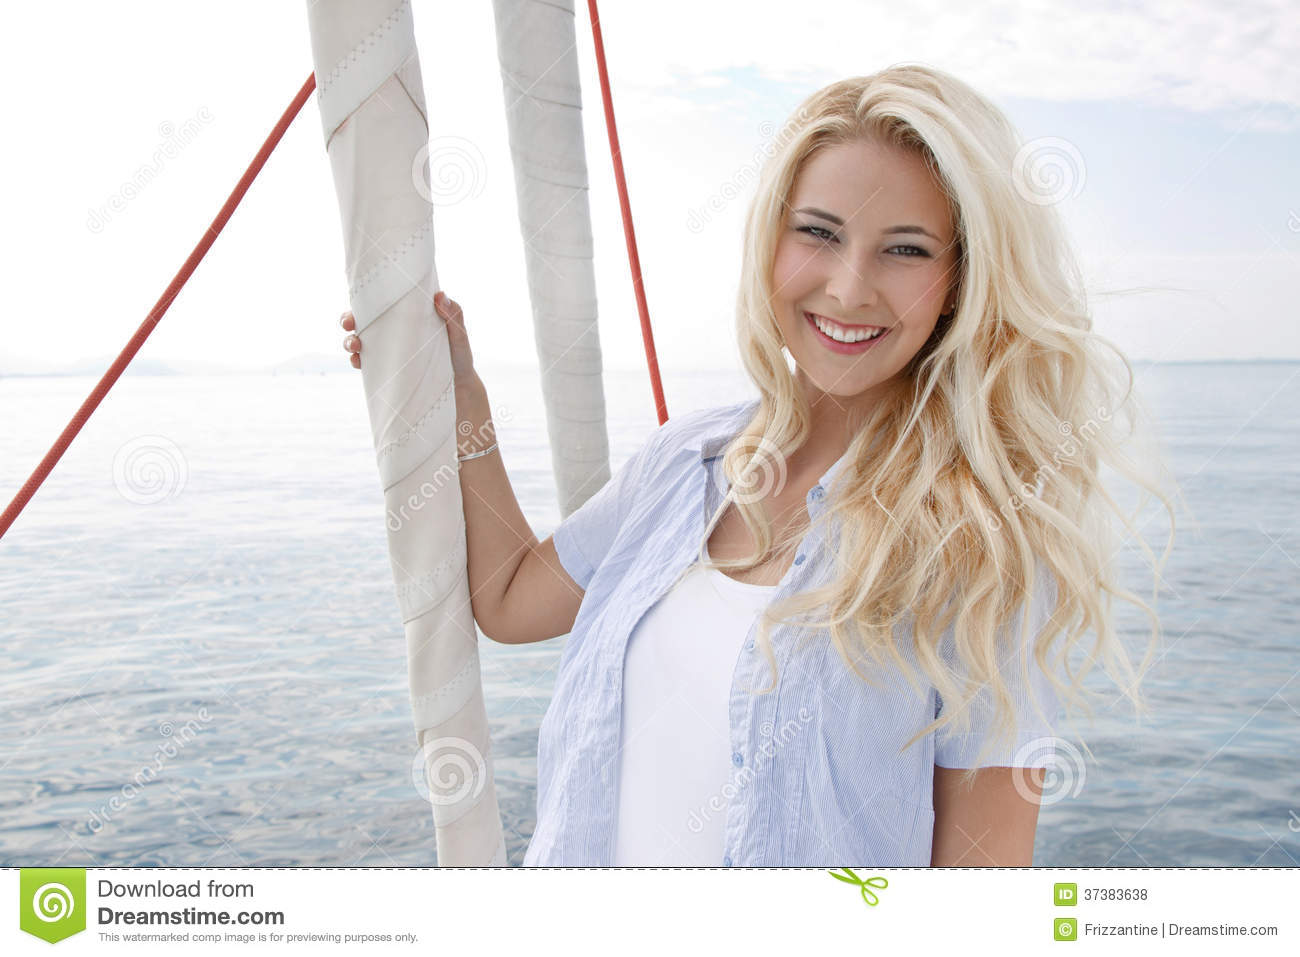 Portrait Of Blond Beautiful Young Woman On Sailing Boat. Royalty Free Stock Photos - Image: 37383638